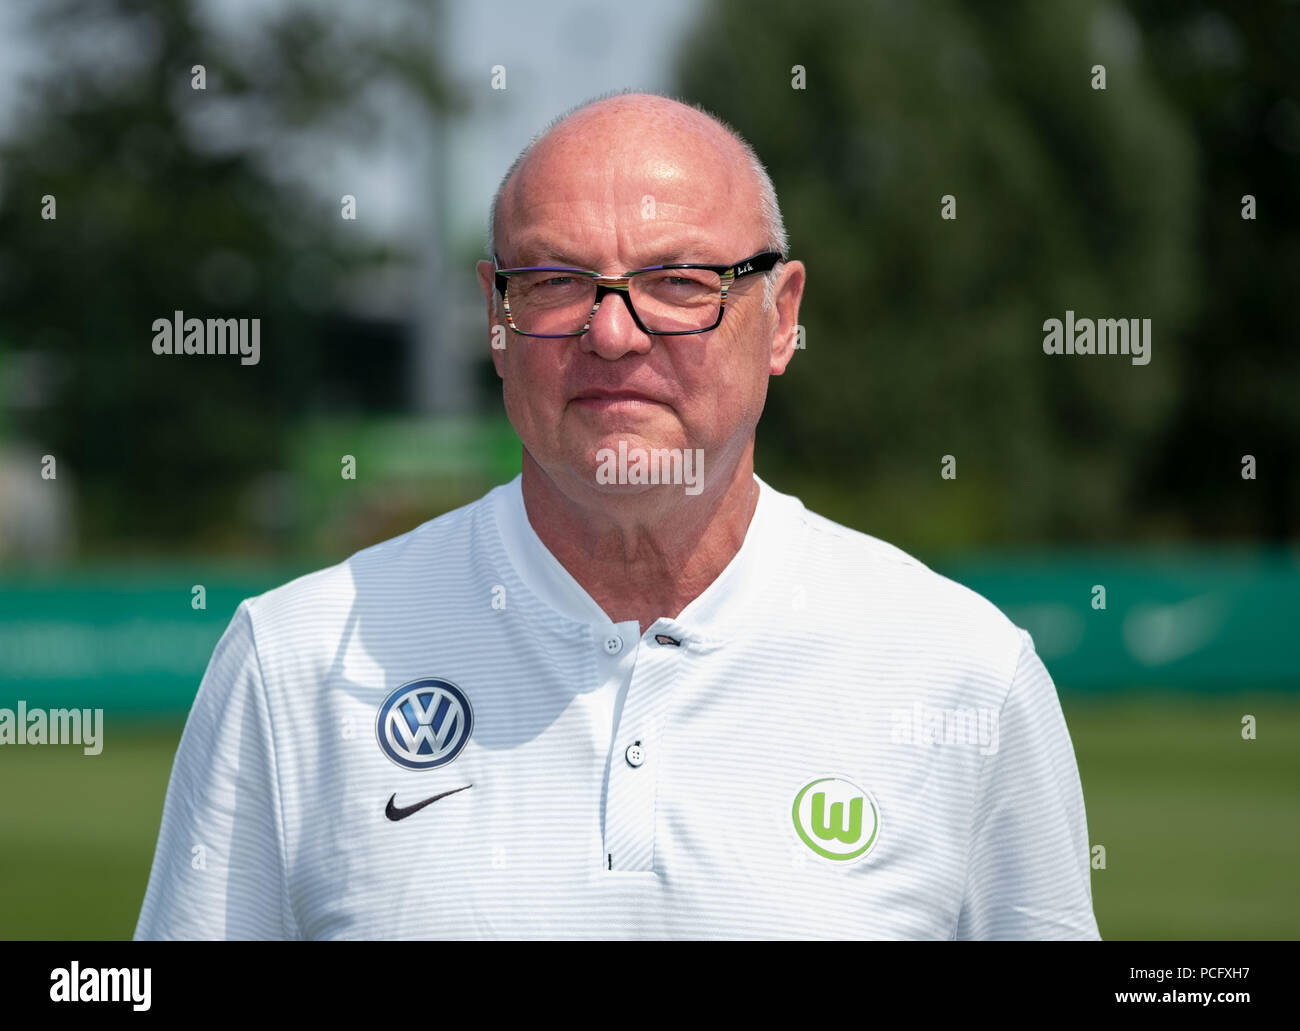 Wolfsburg, Germany. 20th July, 2018. German Bundesliga, official photocall VfL Wolfsburg for season 2018/19 in Wolfsburg, Germany: kitman Heribert Ruettger; Credit: Peter Steffen/dpa | usage worldwide/dpa/Alamy Live News - Stock Image